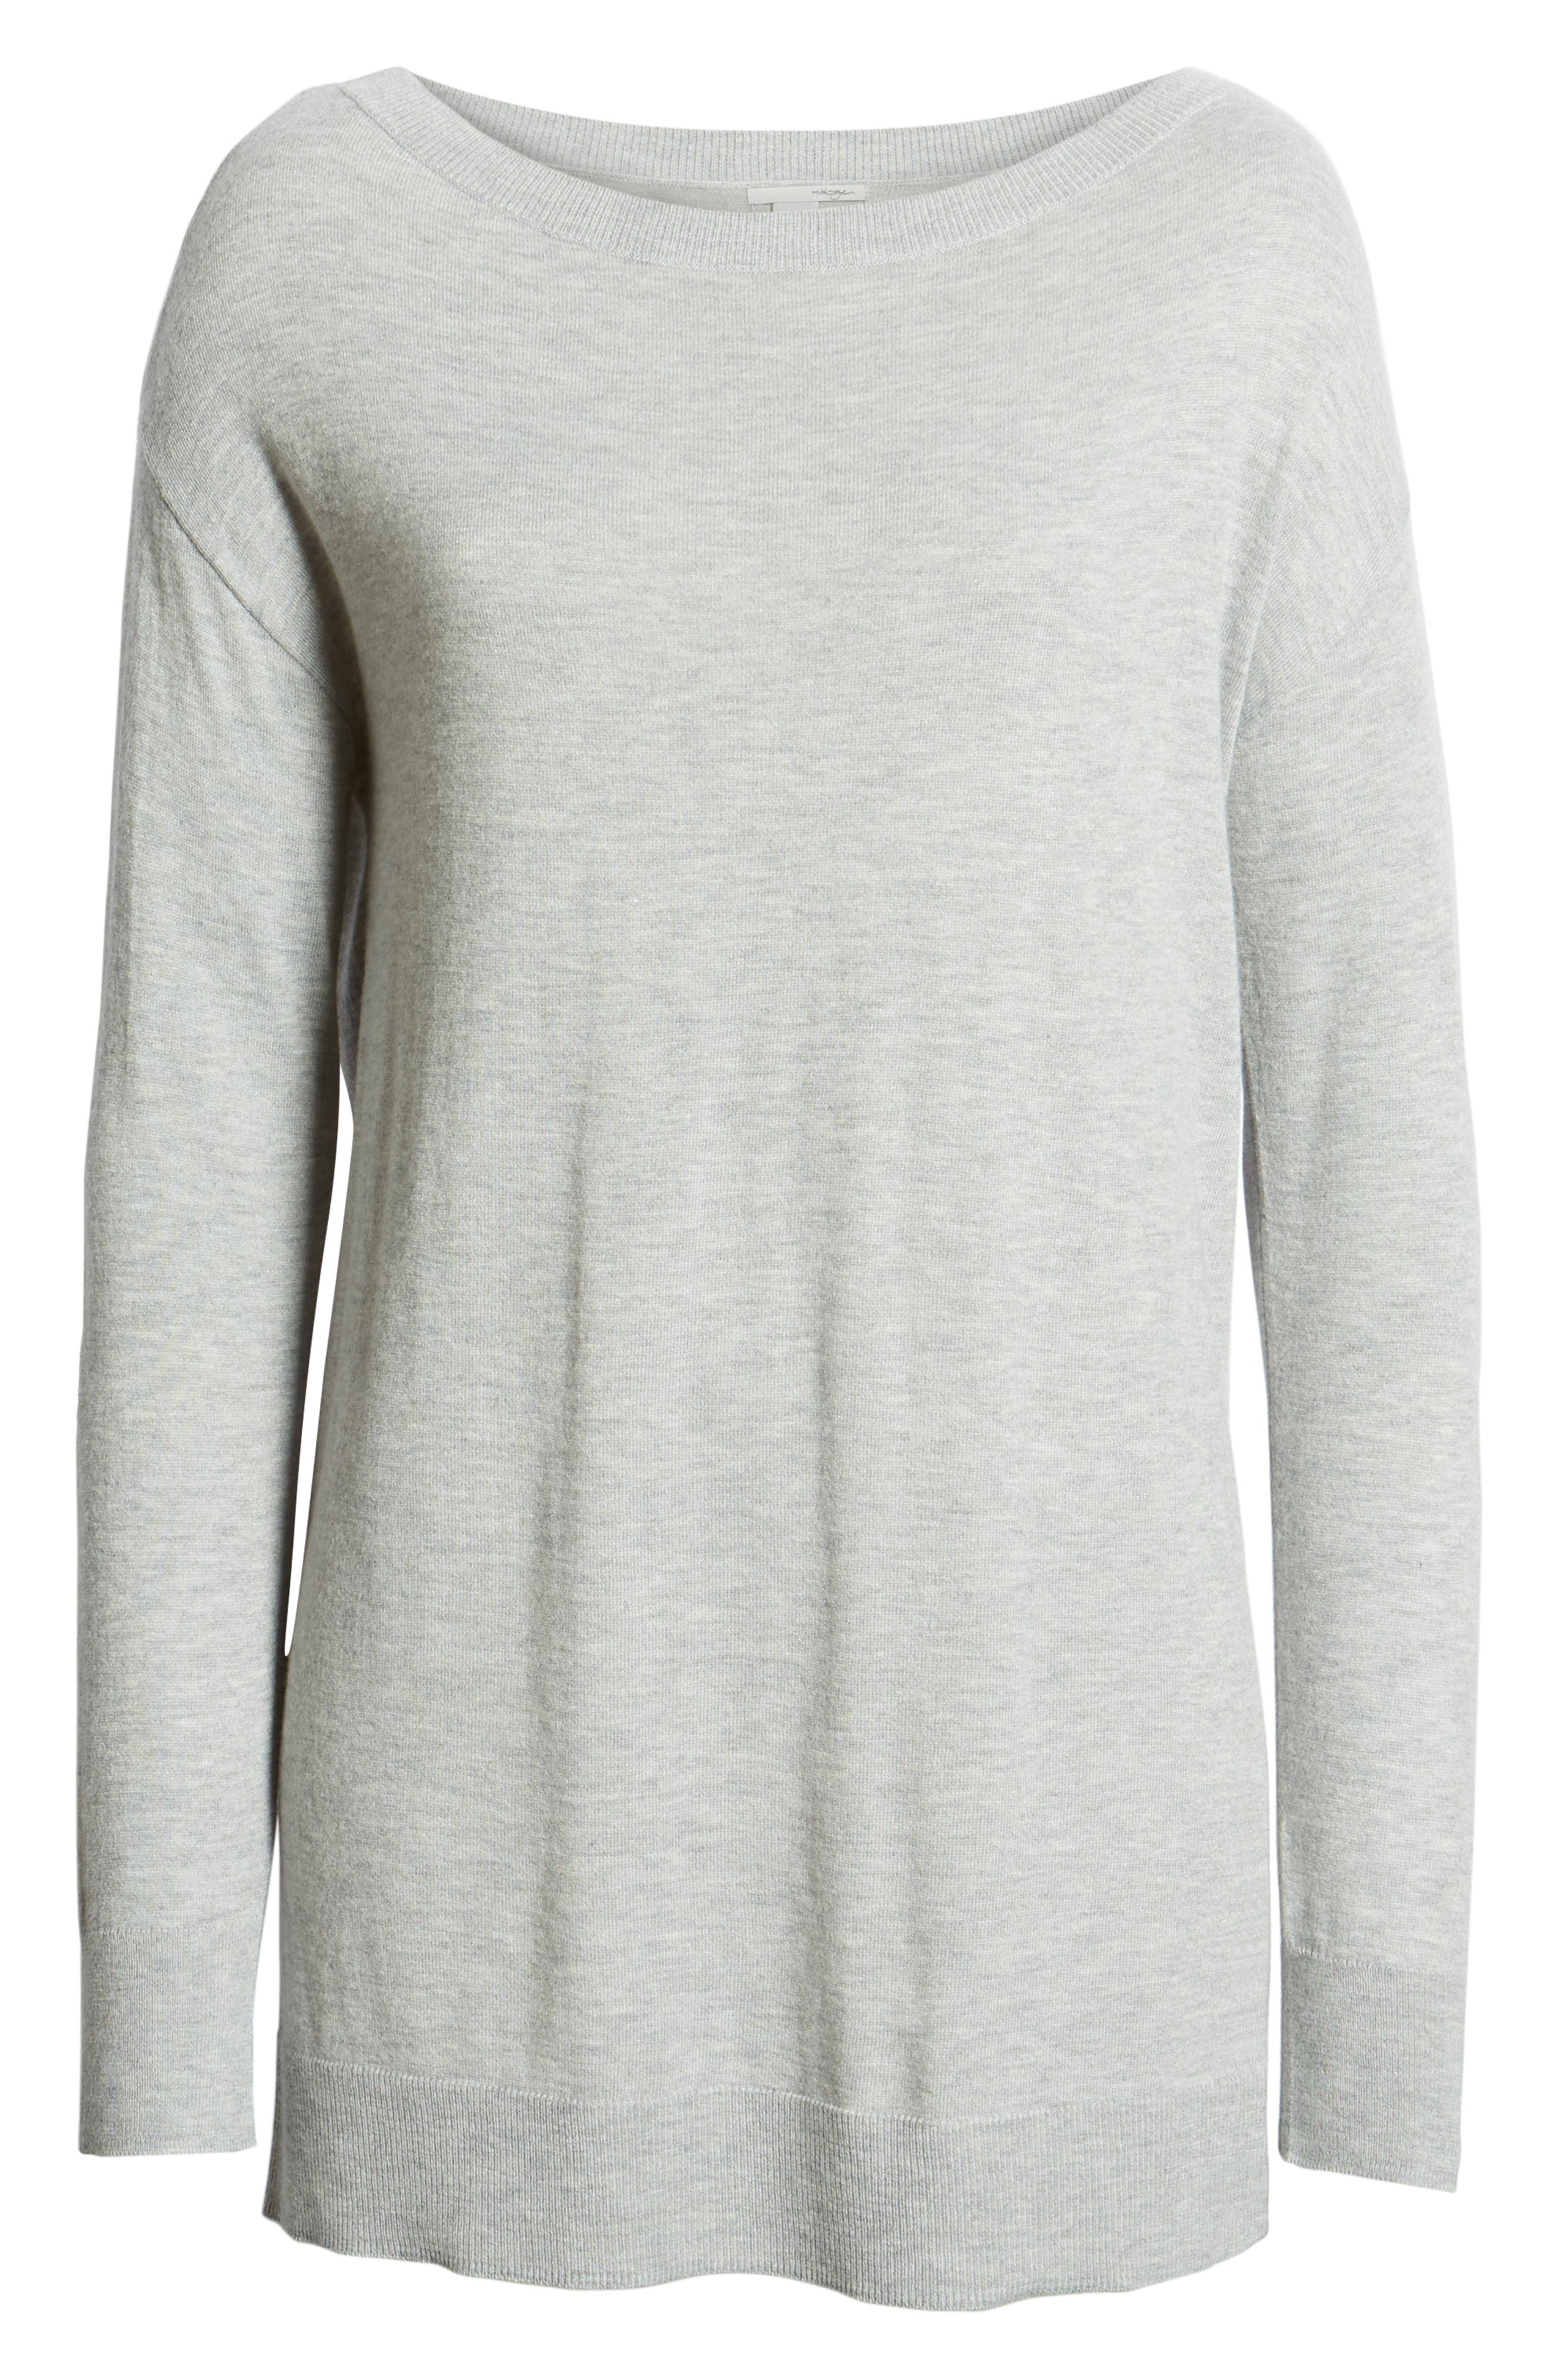 Boatneck Tunic Sweater,                             Alternate thumbnail 6, color,                             GREY HEATHER